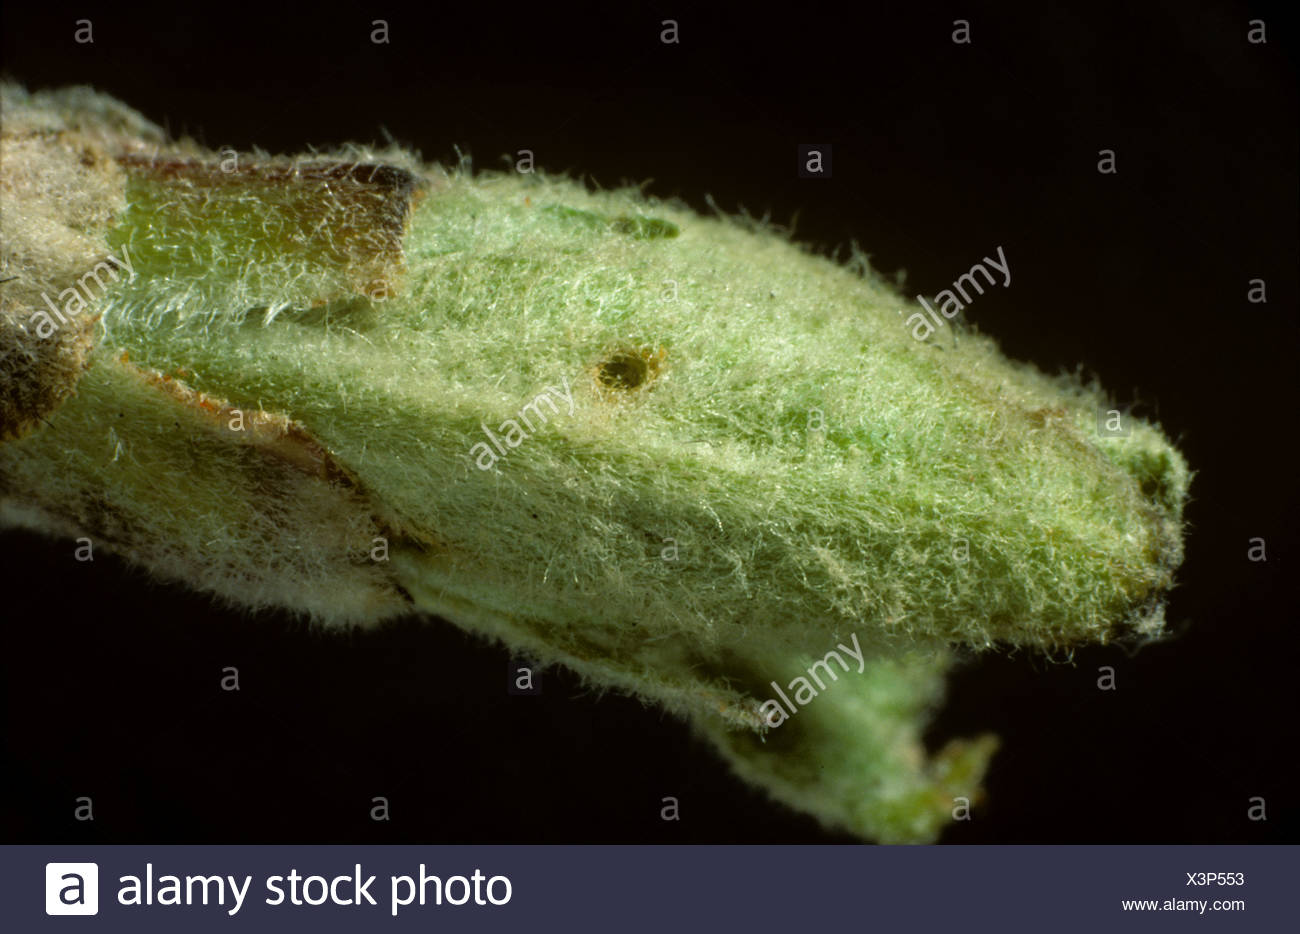 Damage to apple leaf bud by a winter moth Operophtera brumata caterpillar - Stock Image